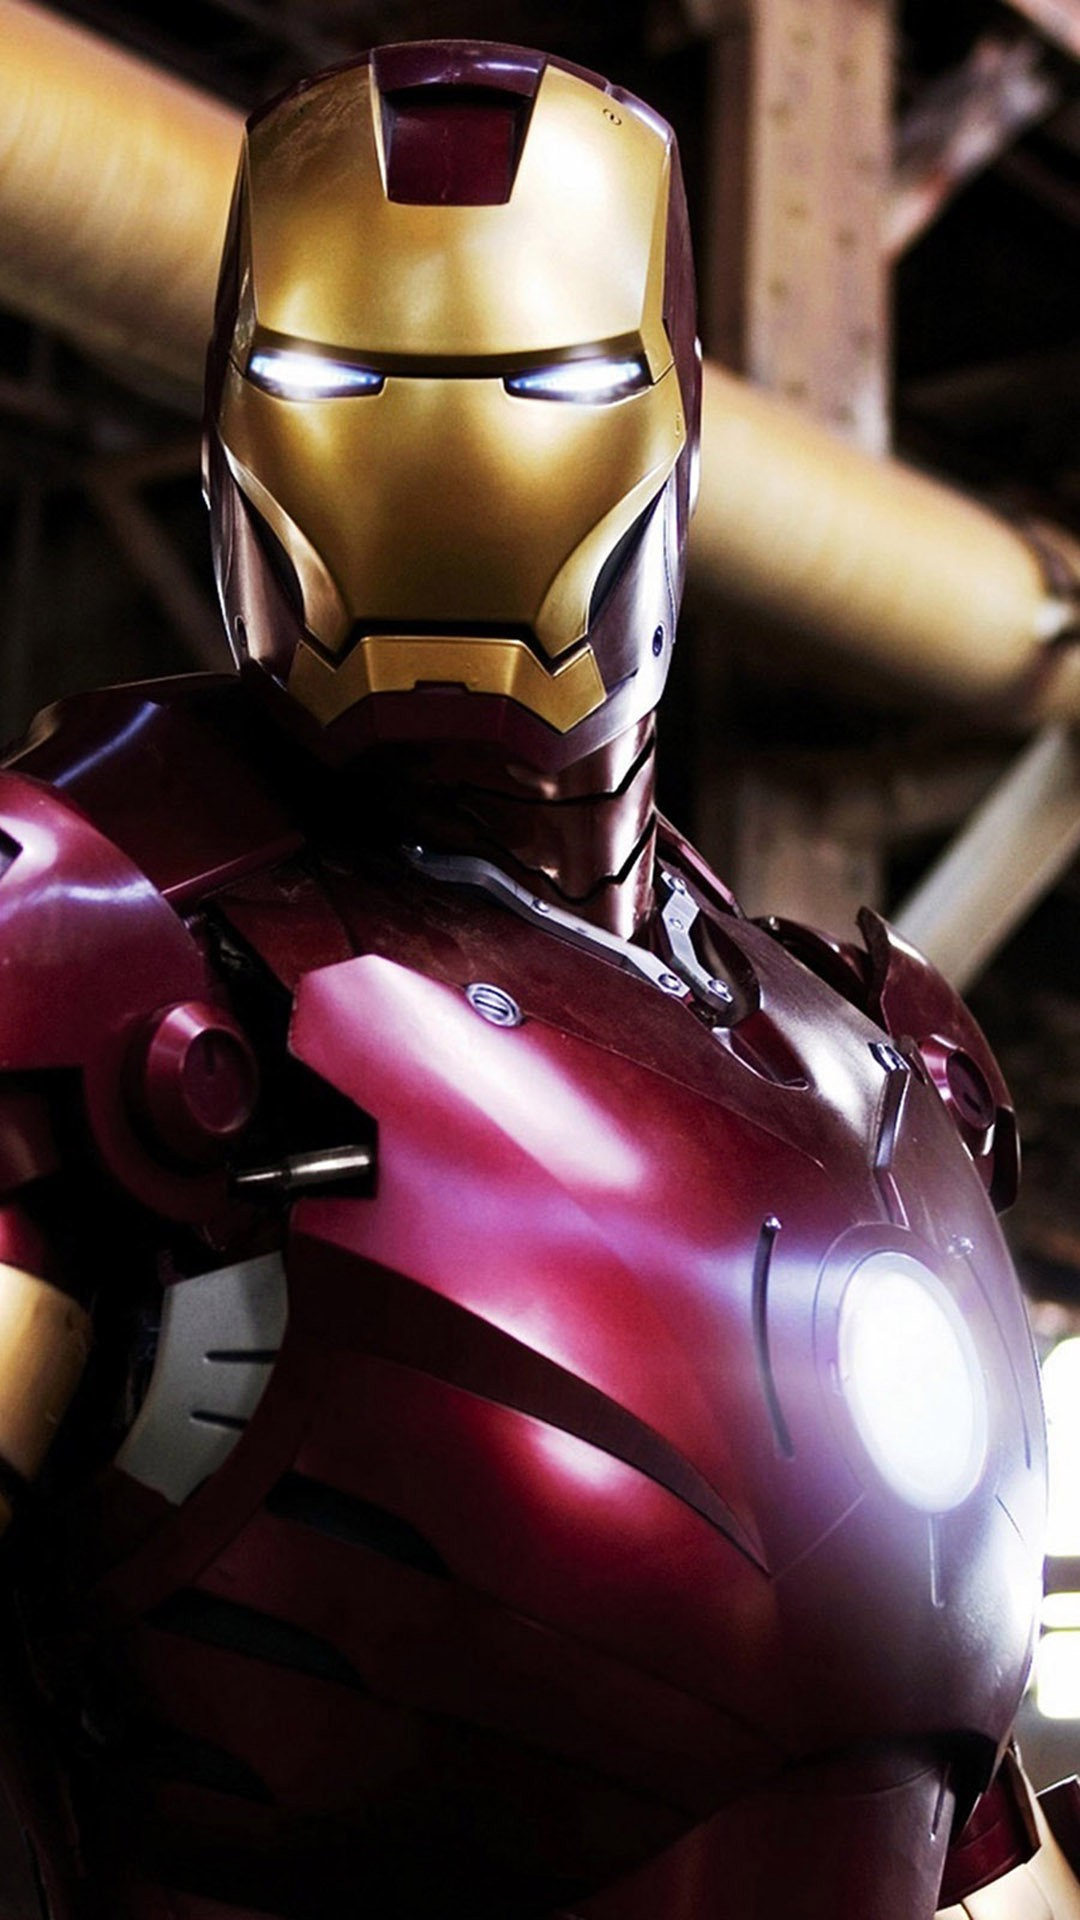 Iron Man 3 Wallpaper Hd For Iphone